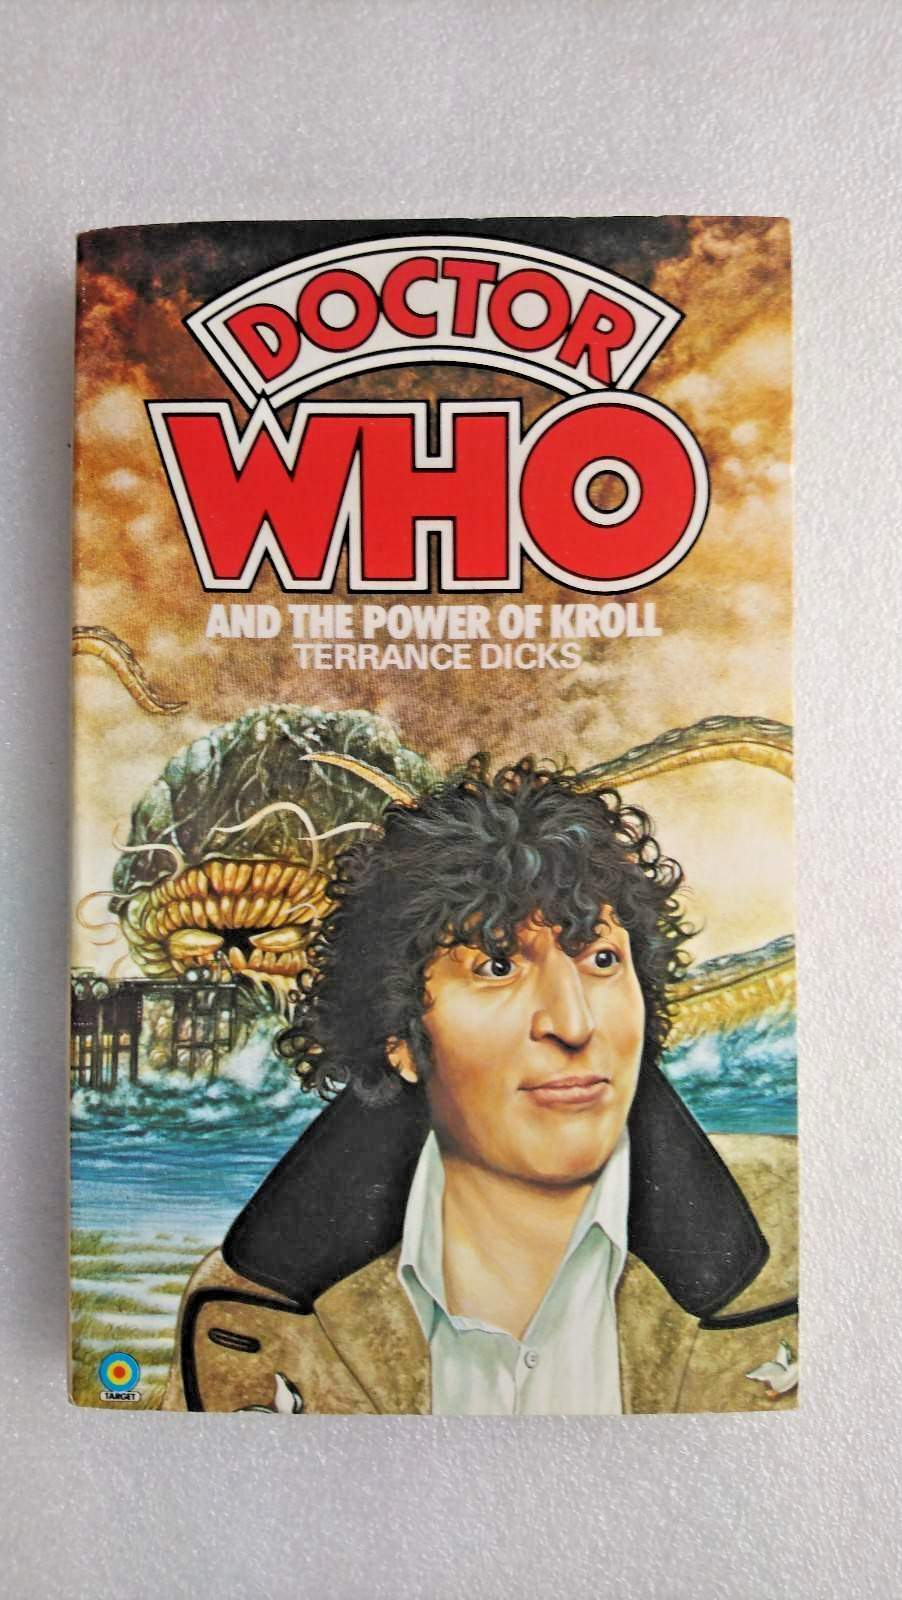 Doctor Who and the Power of Kroll by Terrance Dicks (Paperback, 1983)